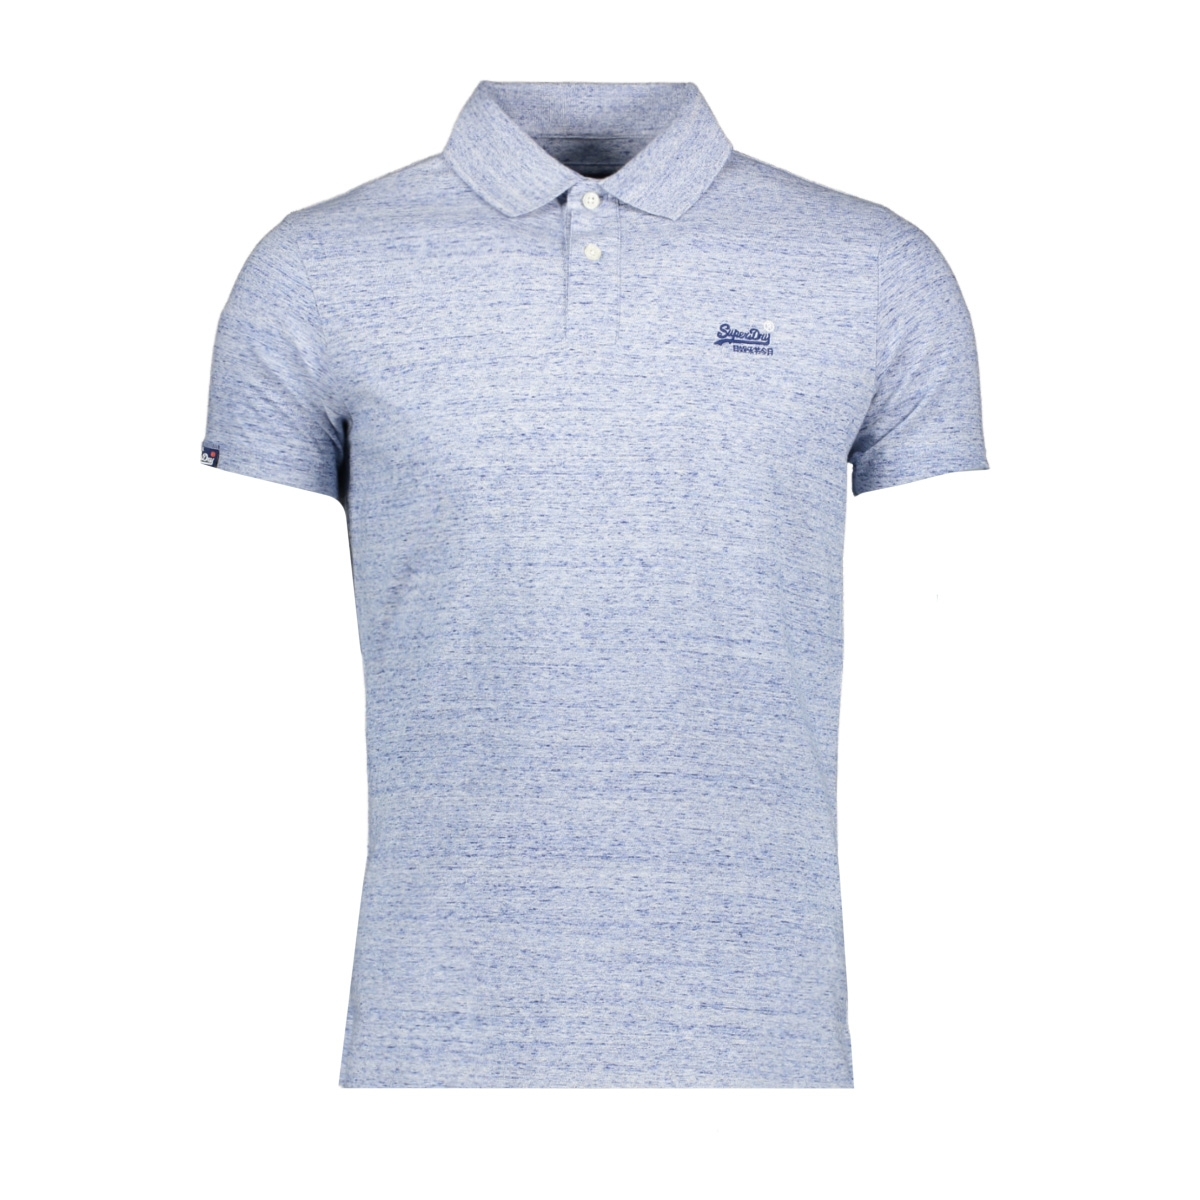 jersey s/s polo m1110002a superdry polo gravel blue grit